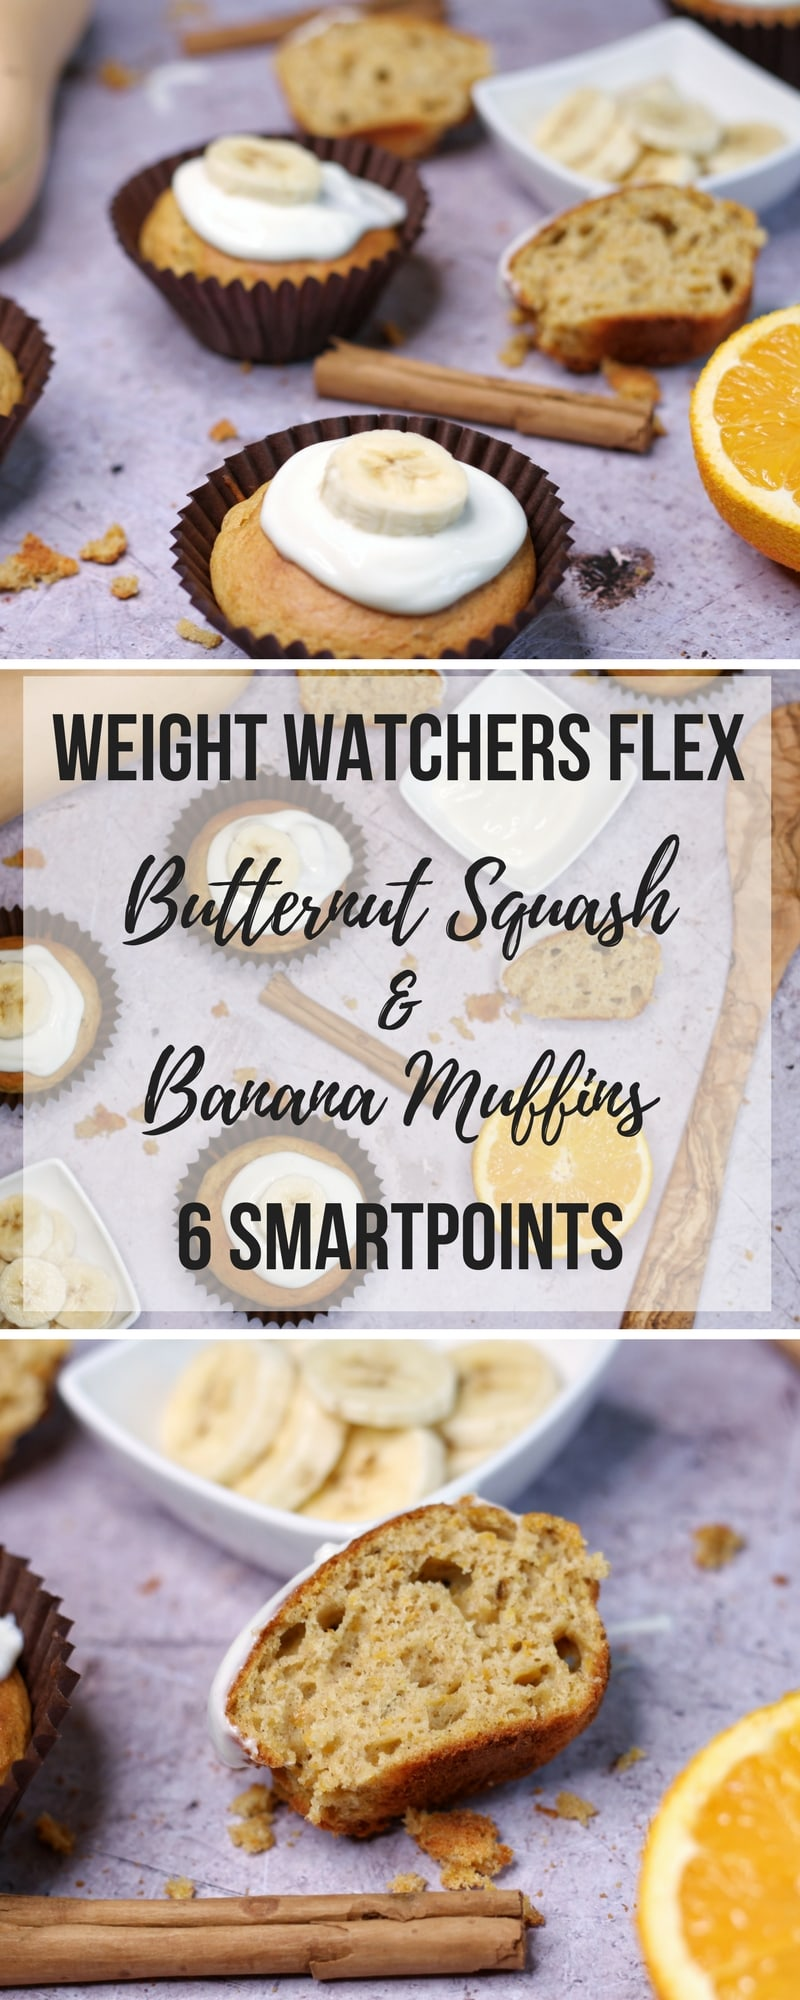 Weight Watchers Flex Recipe - Butternut Squash and Banana Muffins - a recipe for banana and butternut squash muffins with low fat greek yogurt frosting. #recipe #lowfatrecipe #muffins #bananamuffins #weightwatchers #flex